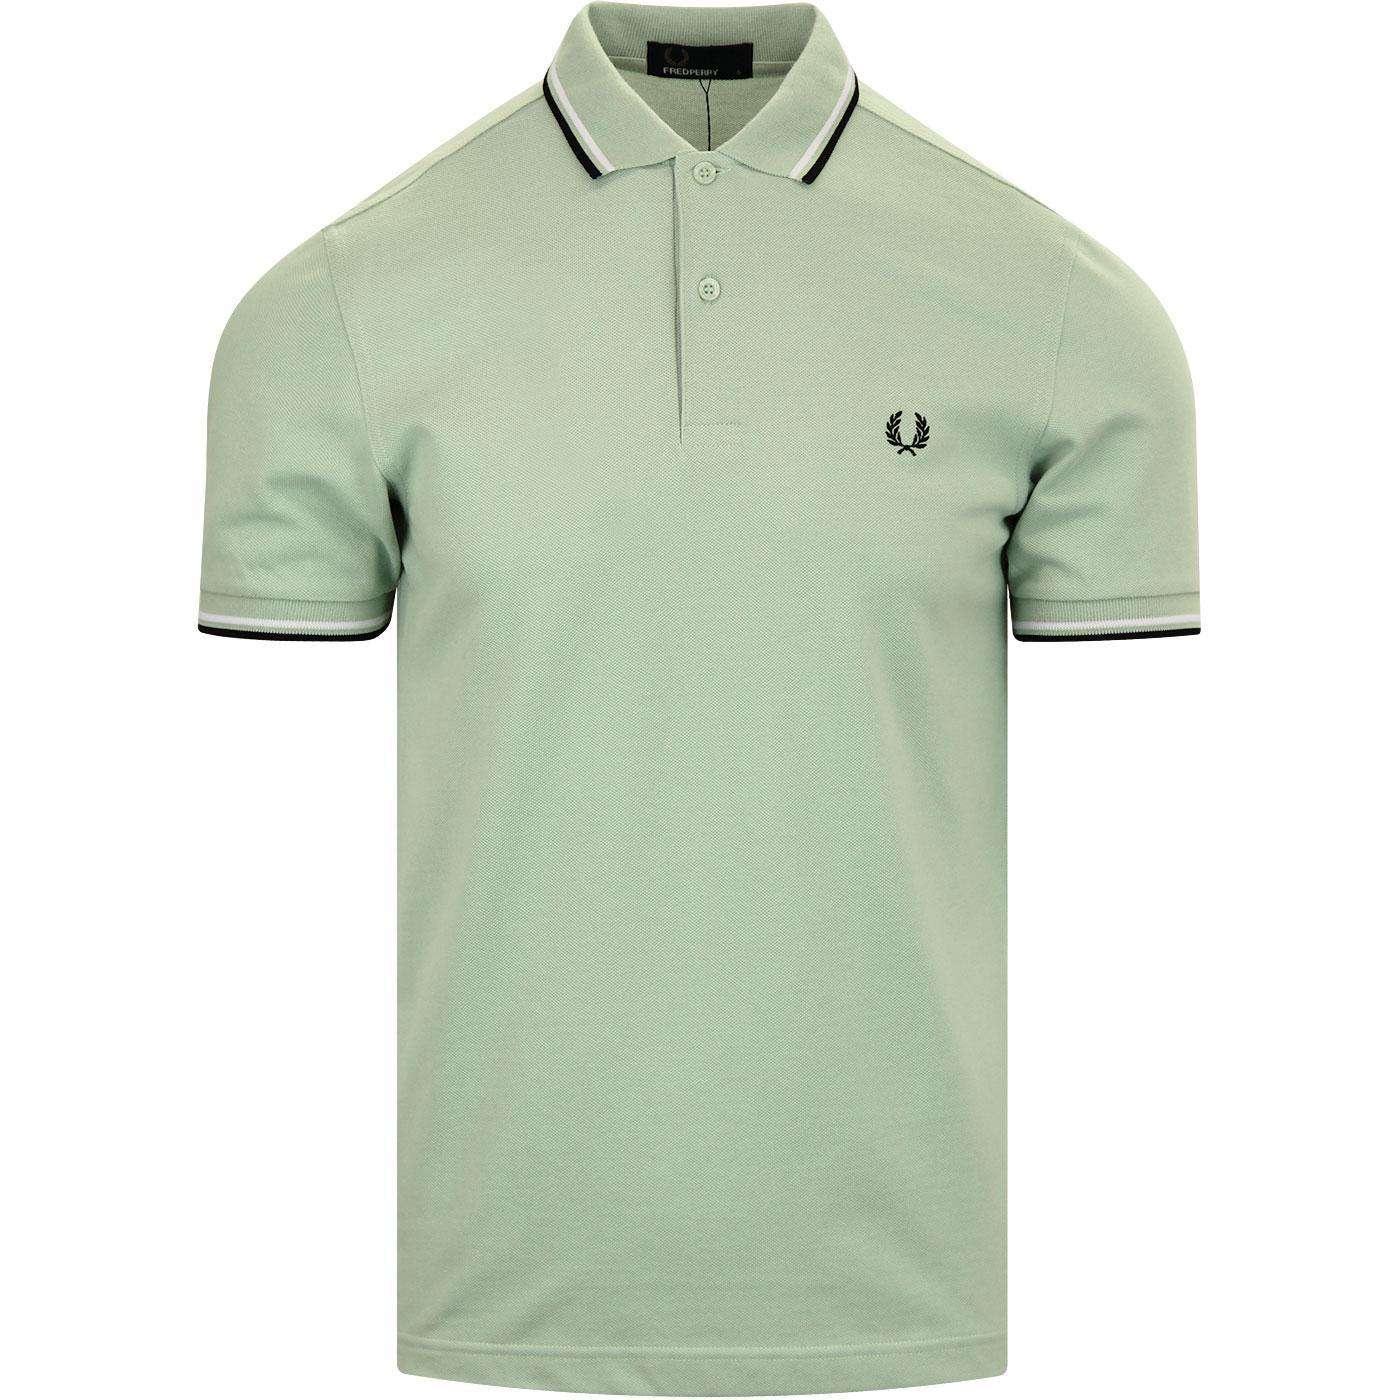 FRED PERRY M3600 Twin Tipped Mod Polo Shirt MINT